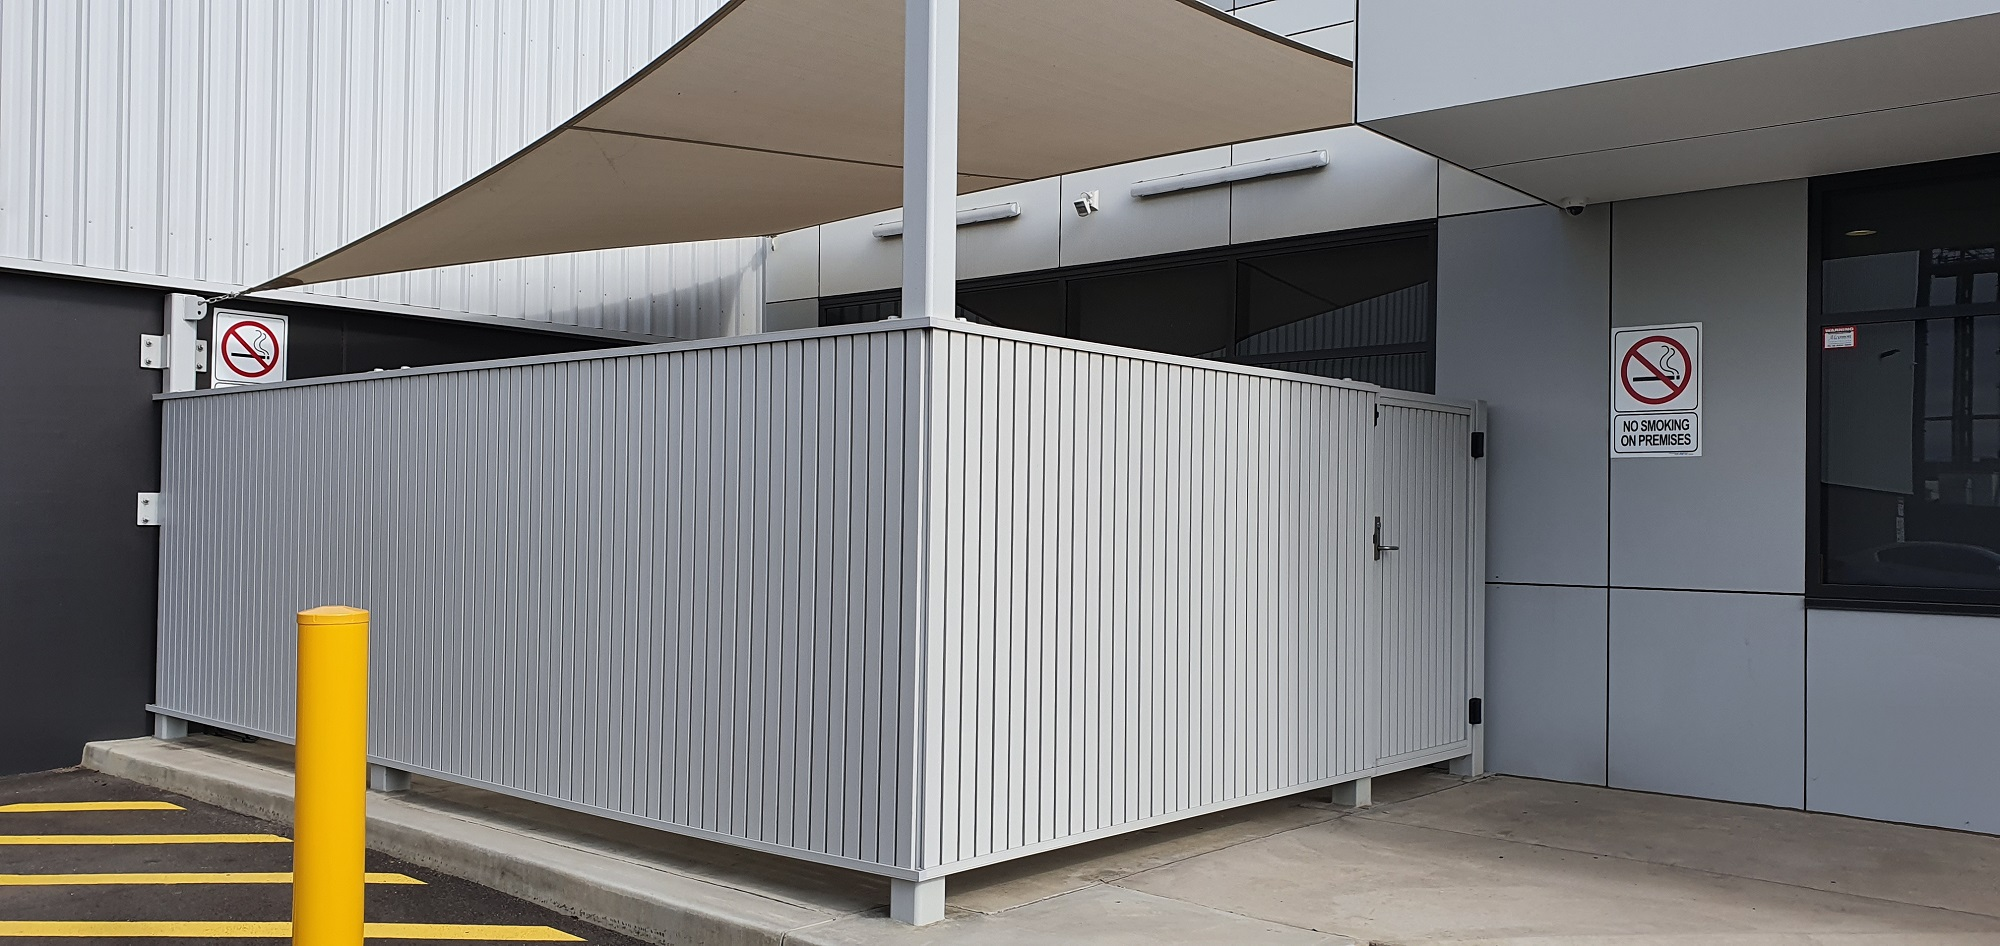 Commercial Fencing Adelaide Fence Centre Chain Mesh Security Fence Wingfield 5